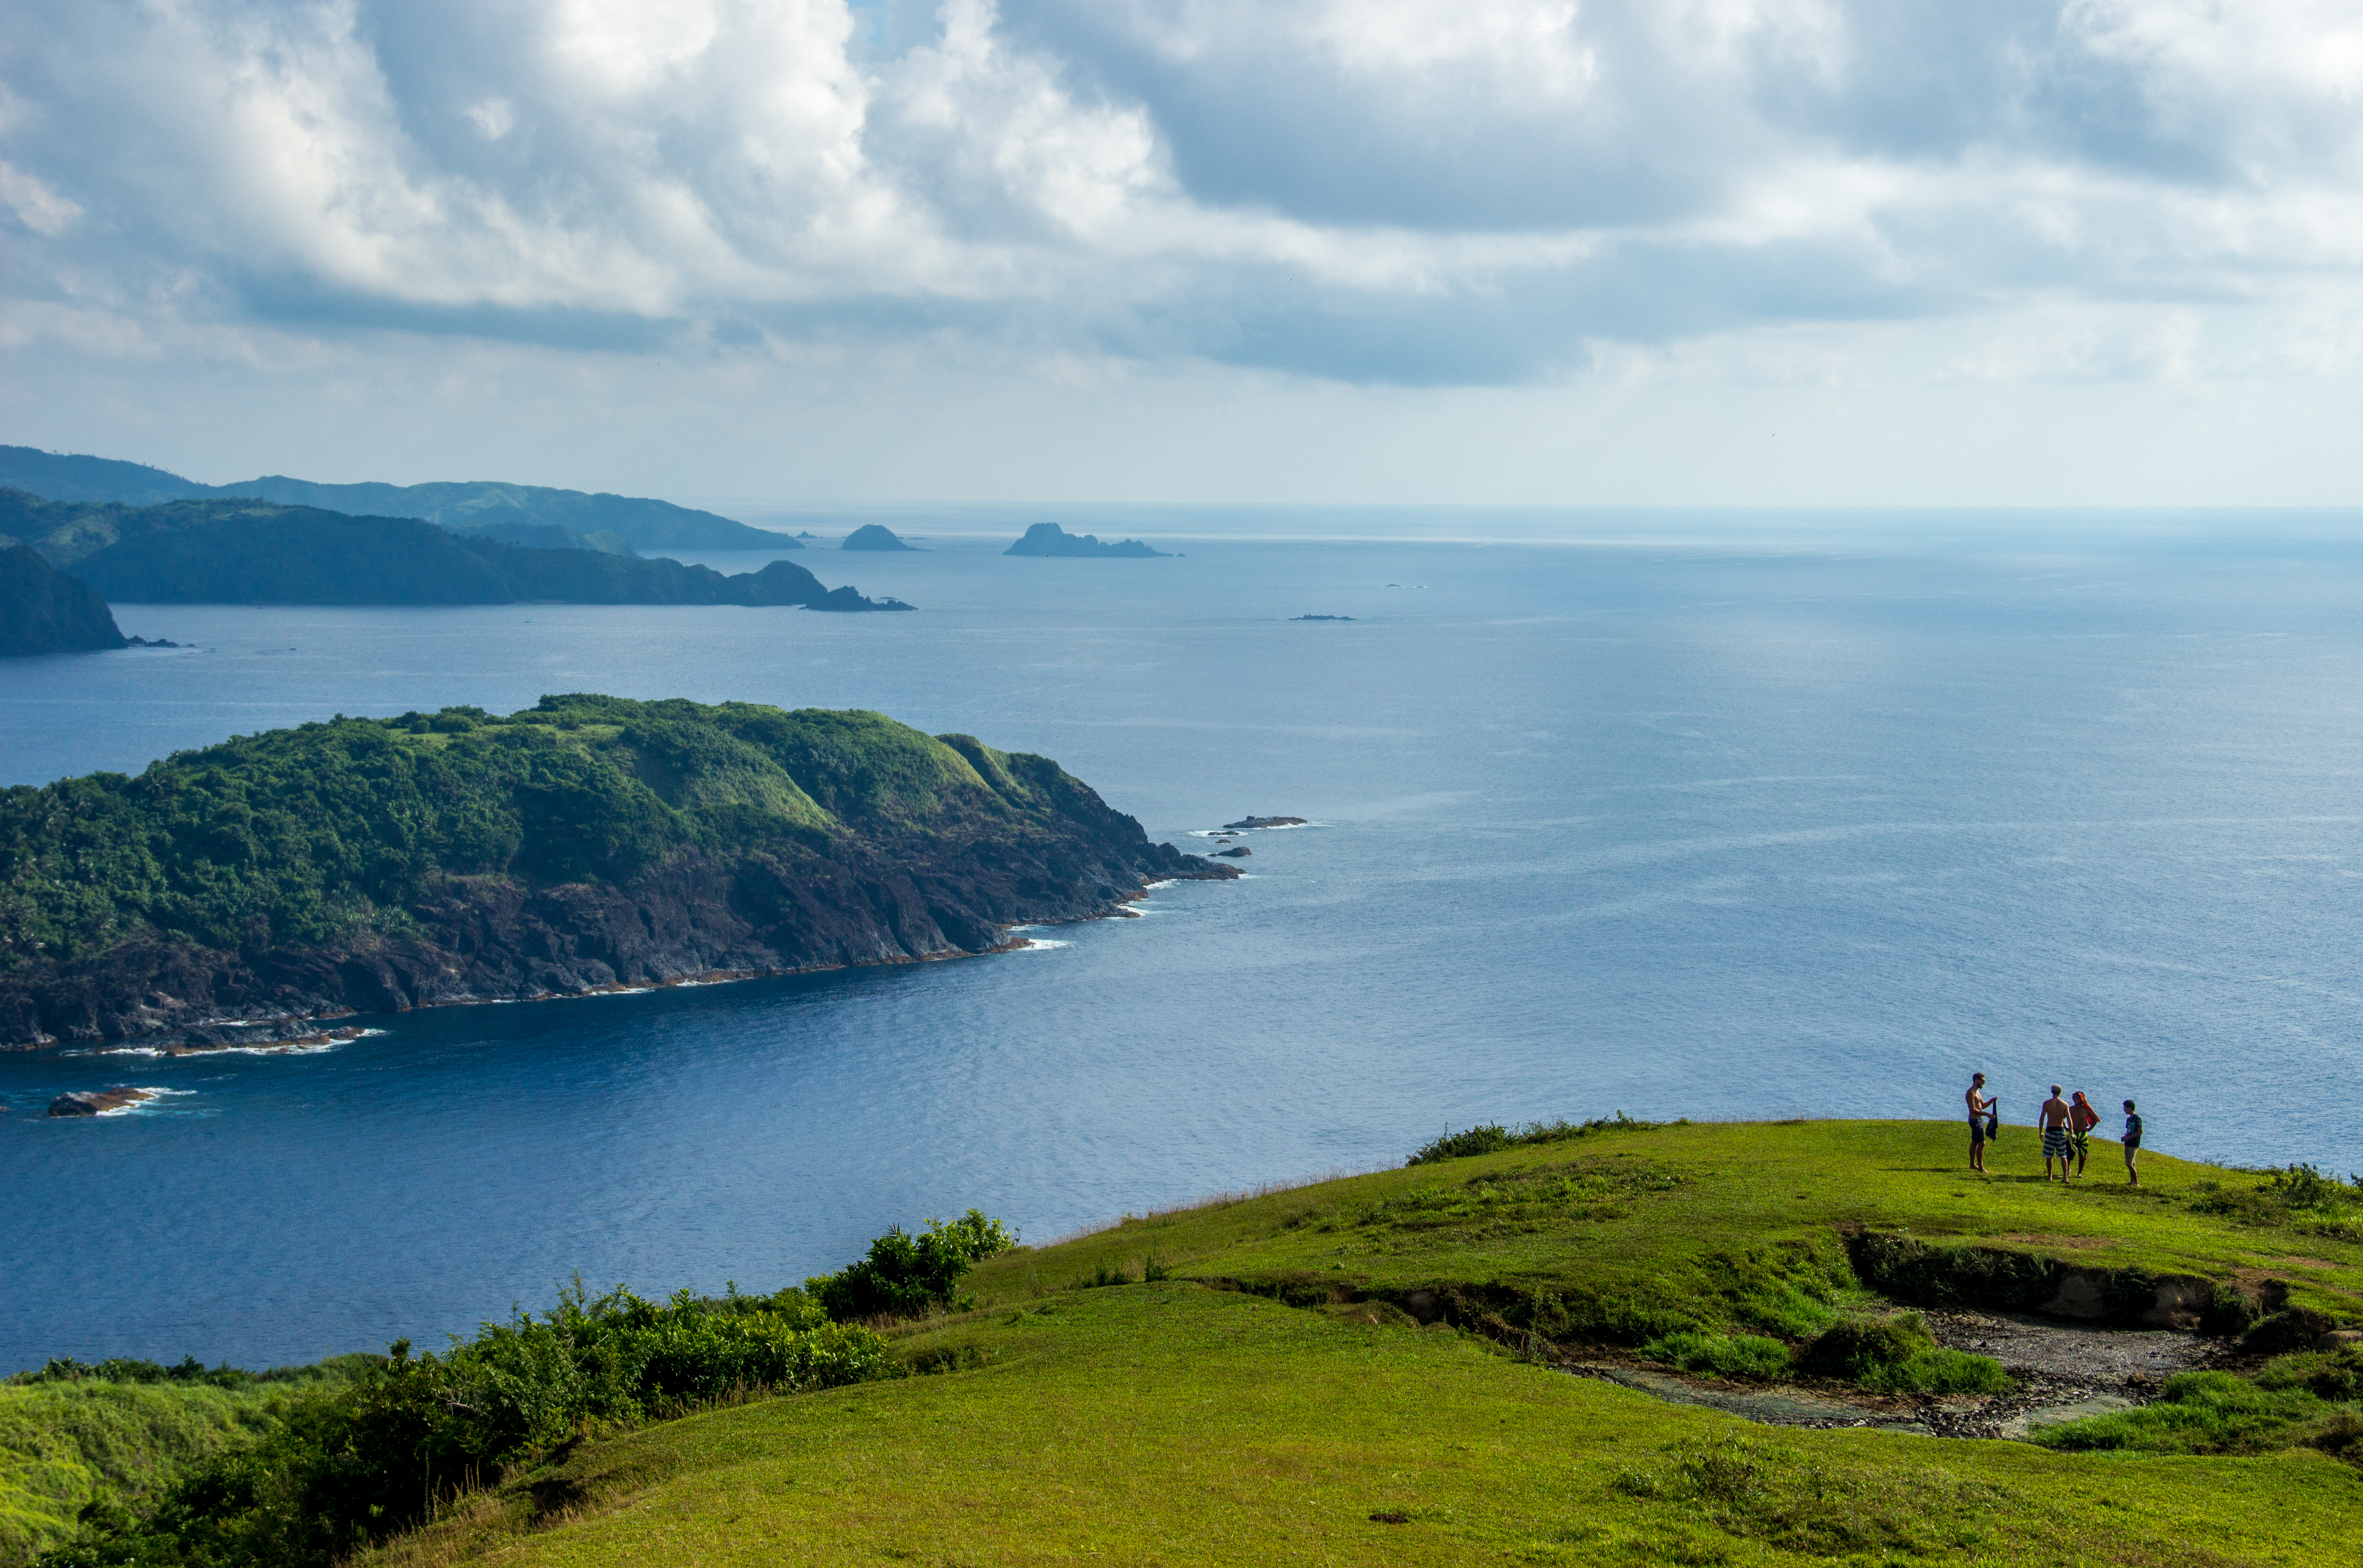 View down the coast of Catanduanes from the Cliffs.